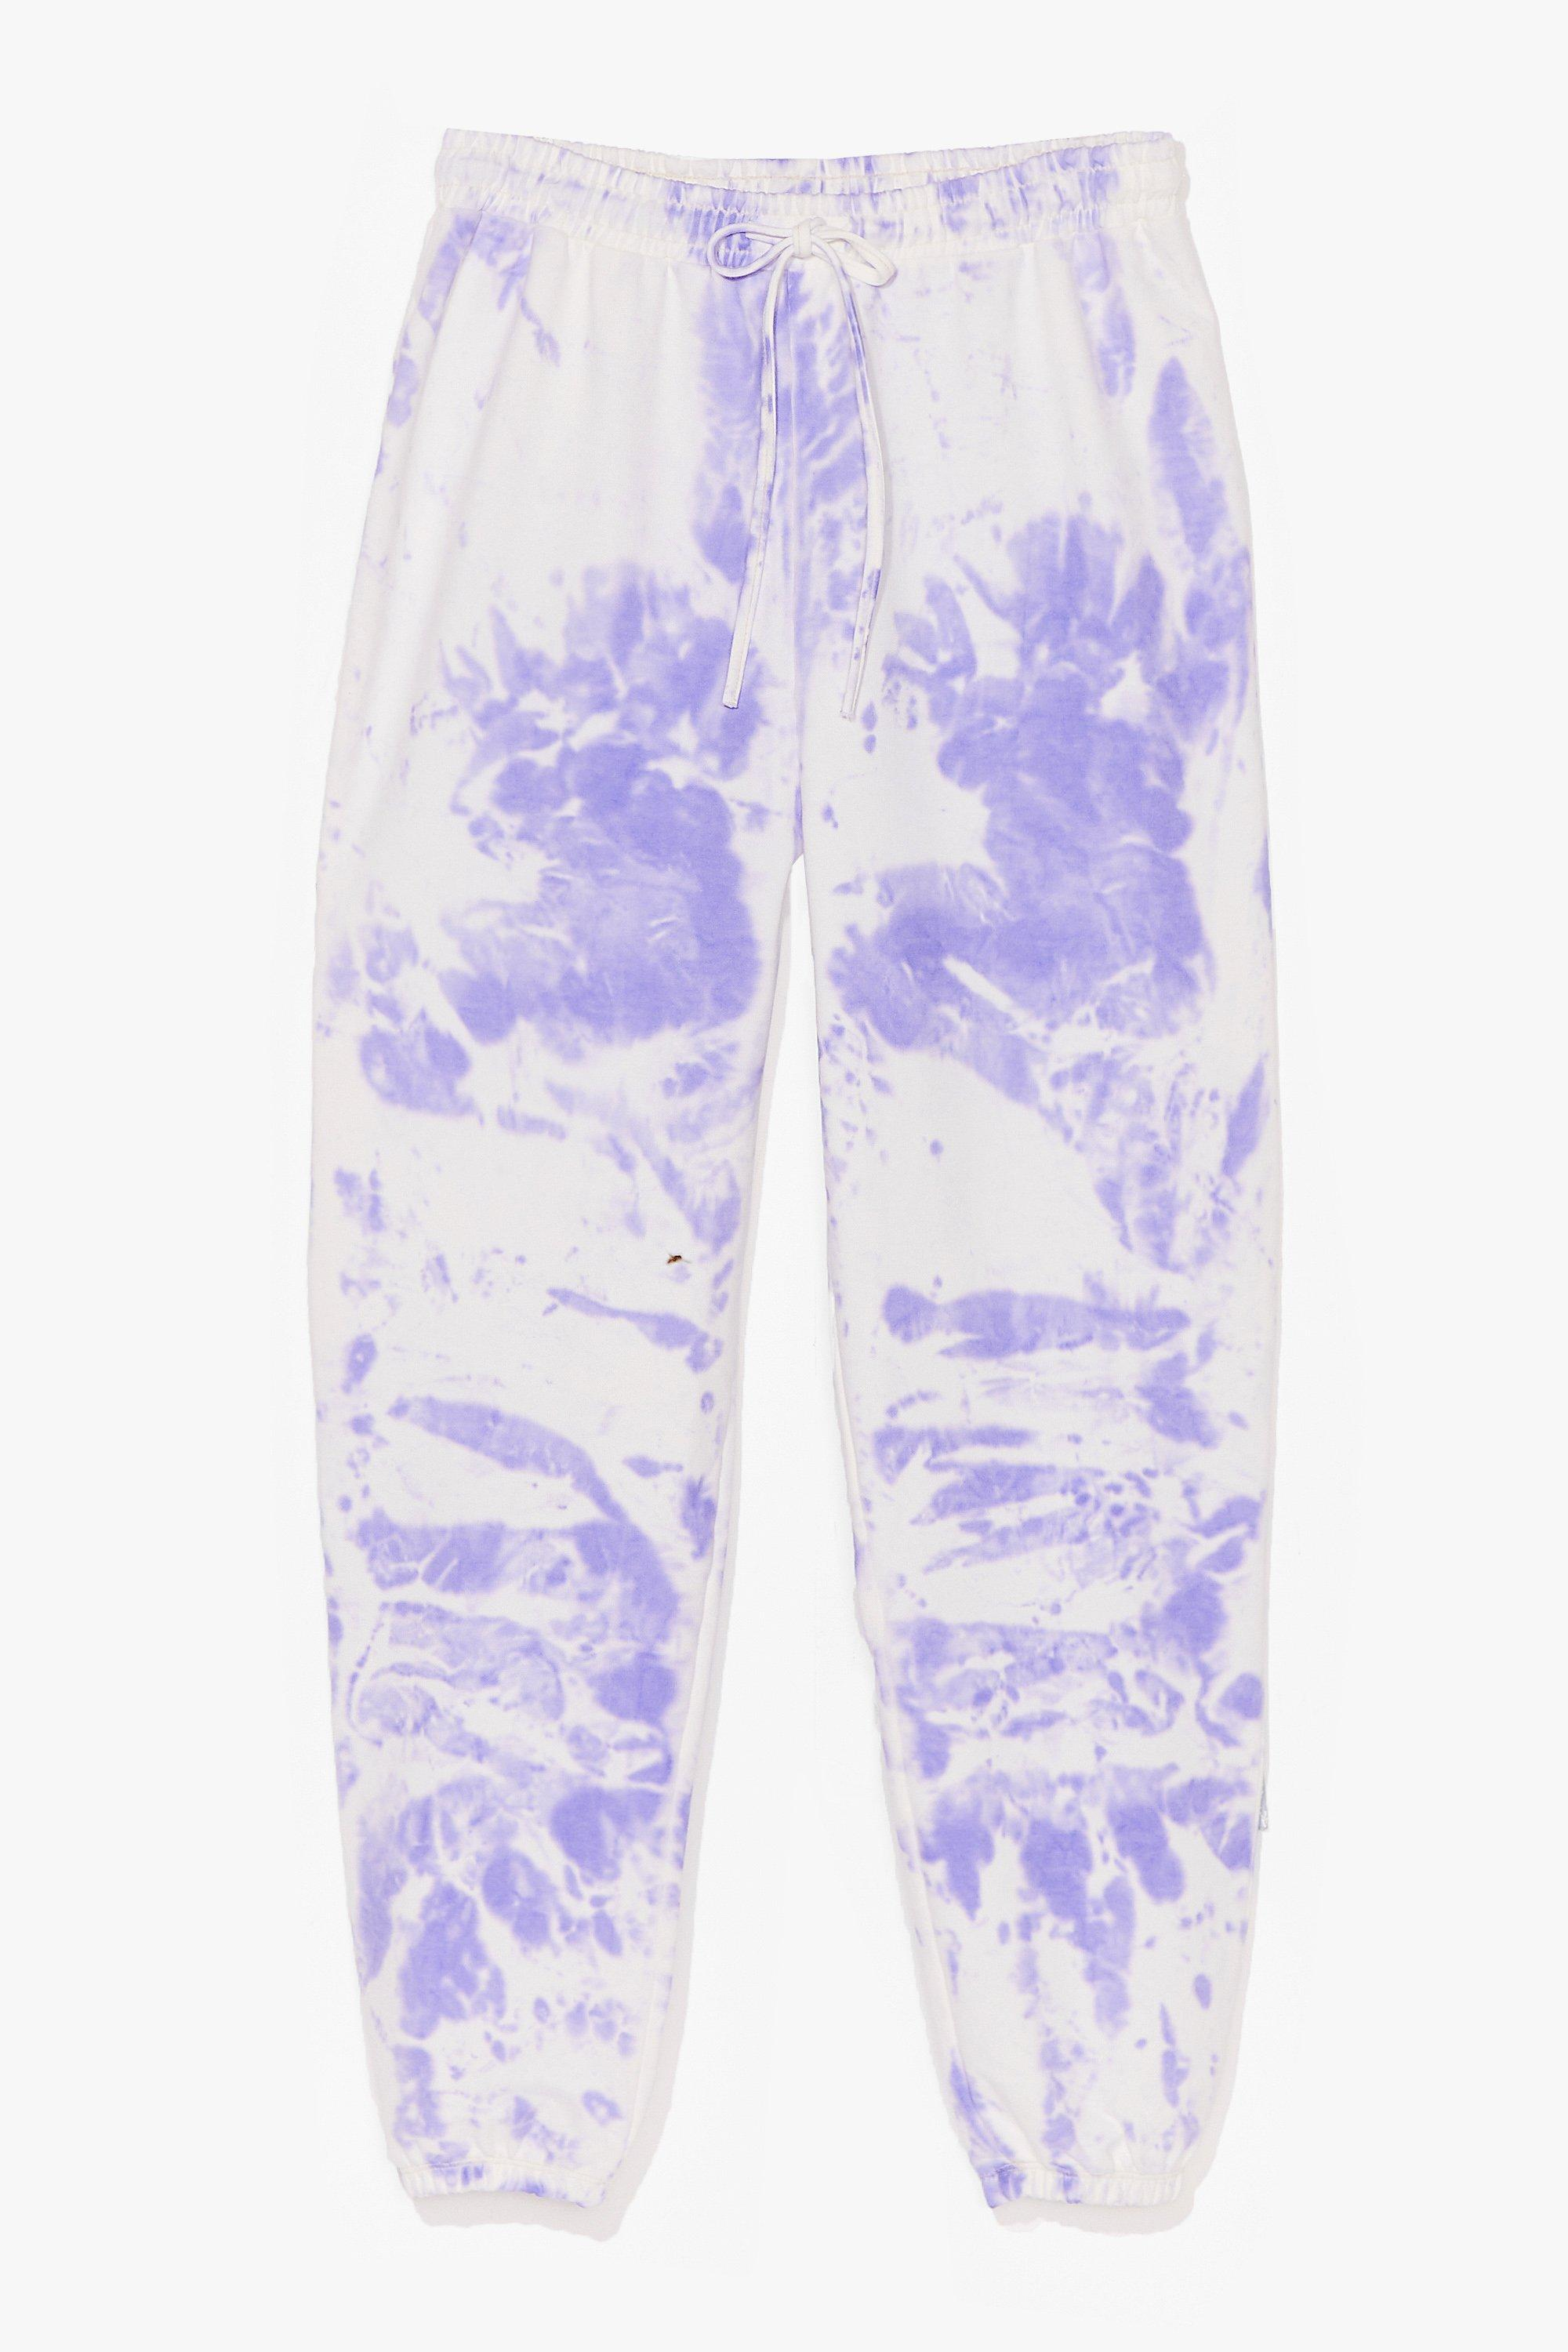 You're All Tie Want Plus Tie Dye Joggers 8